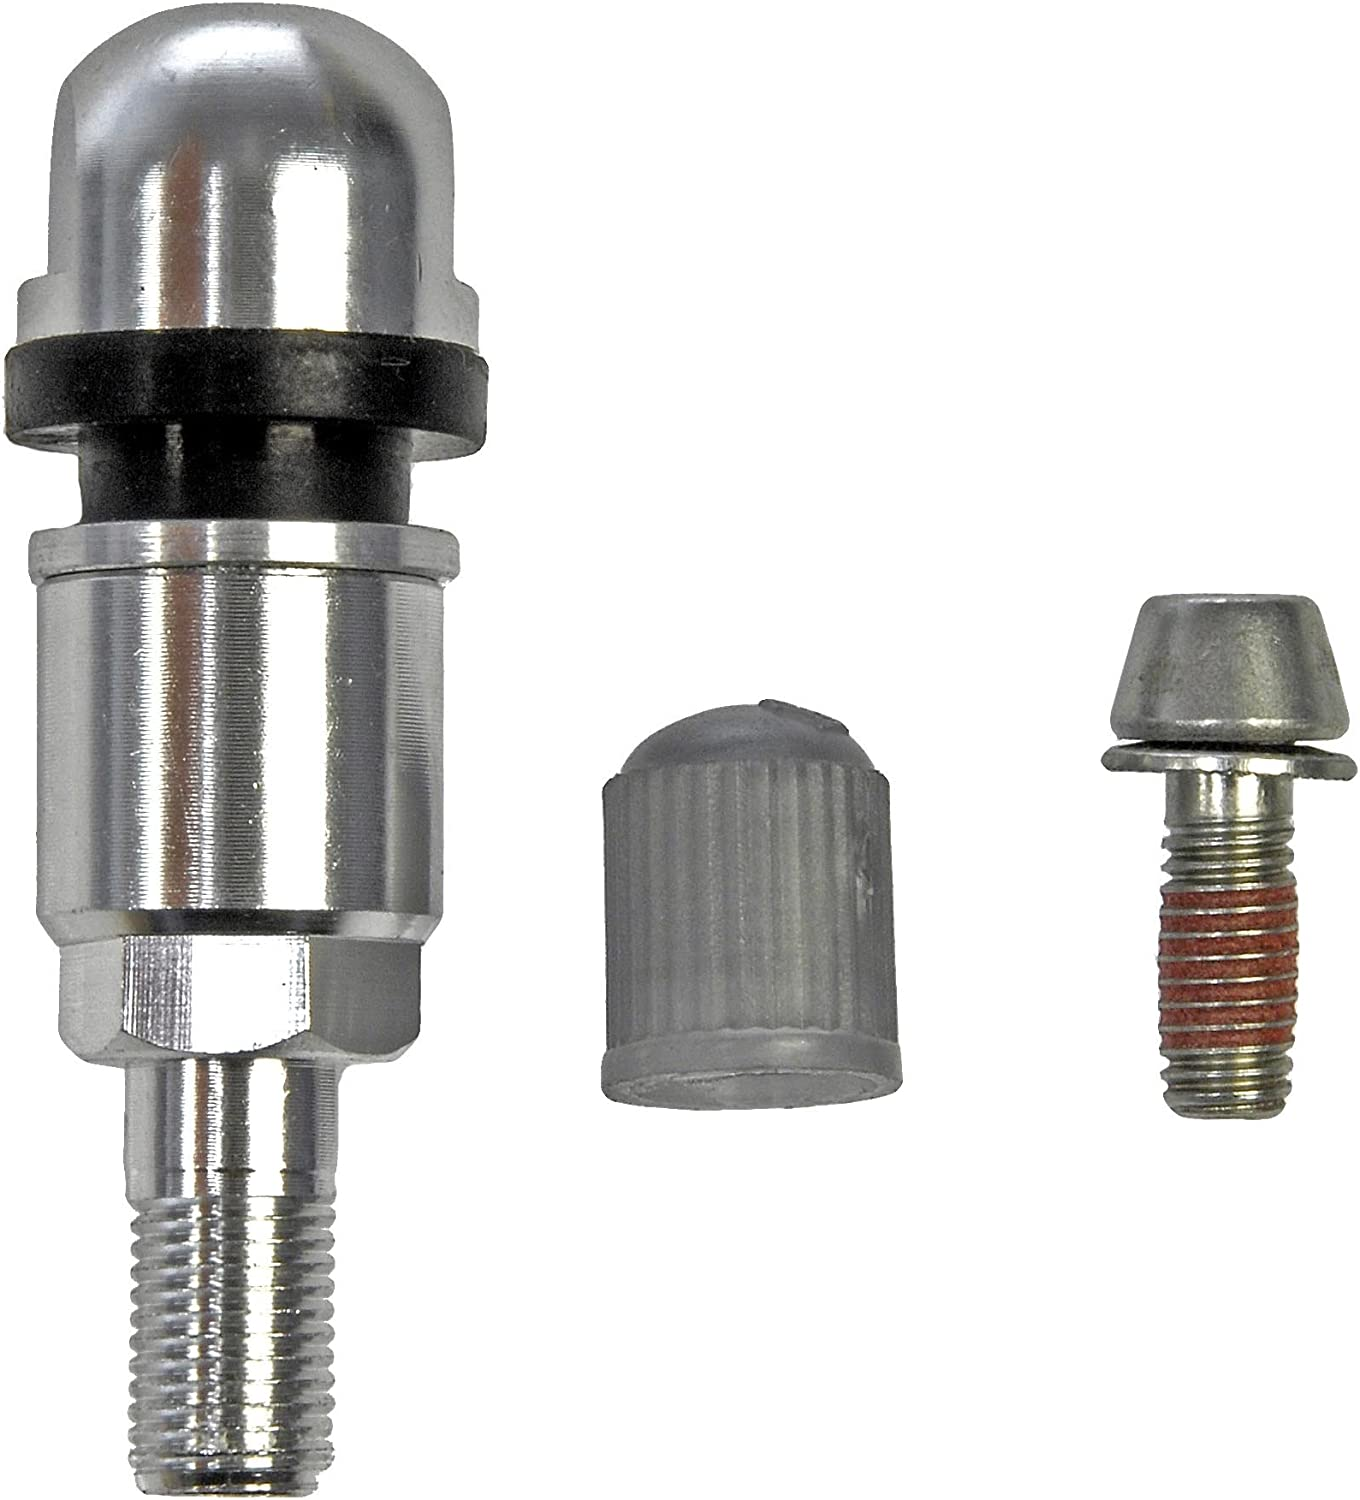 Virginia Beach Mall Dorman 974-000 Tire Pressure Valve Monitor Kit 2021 spring and summer new Replacement